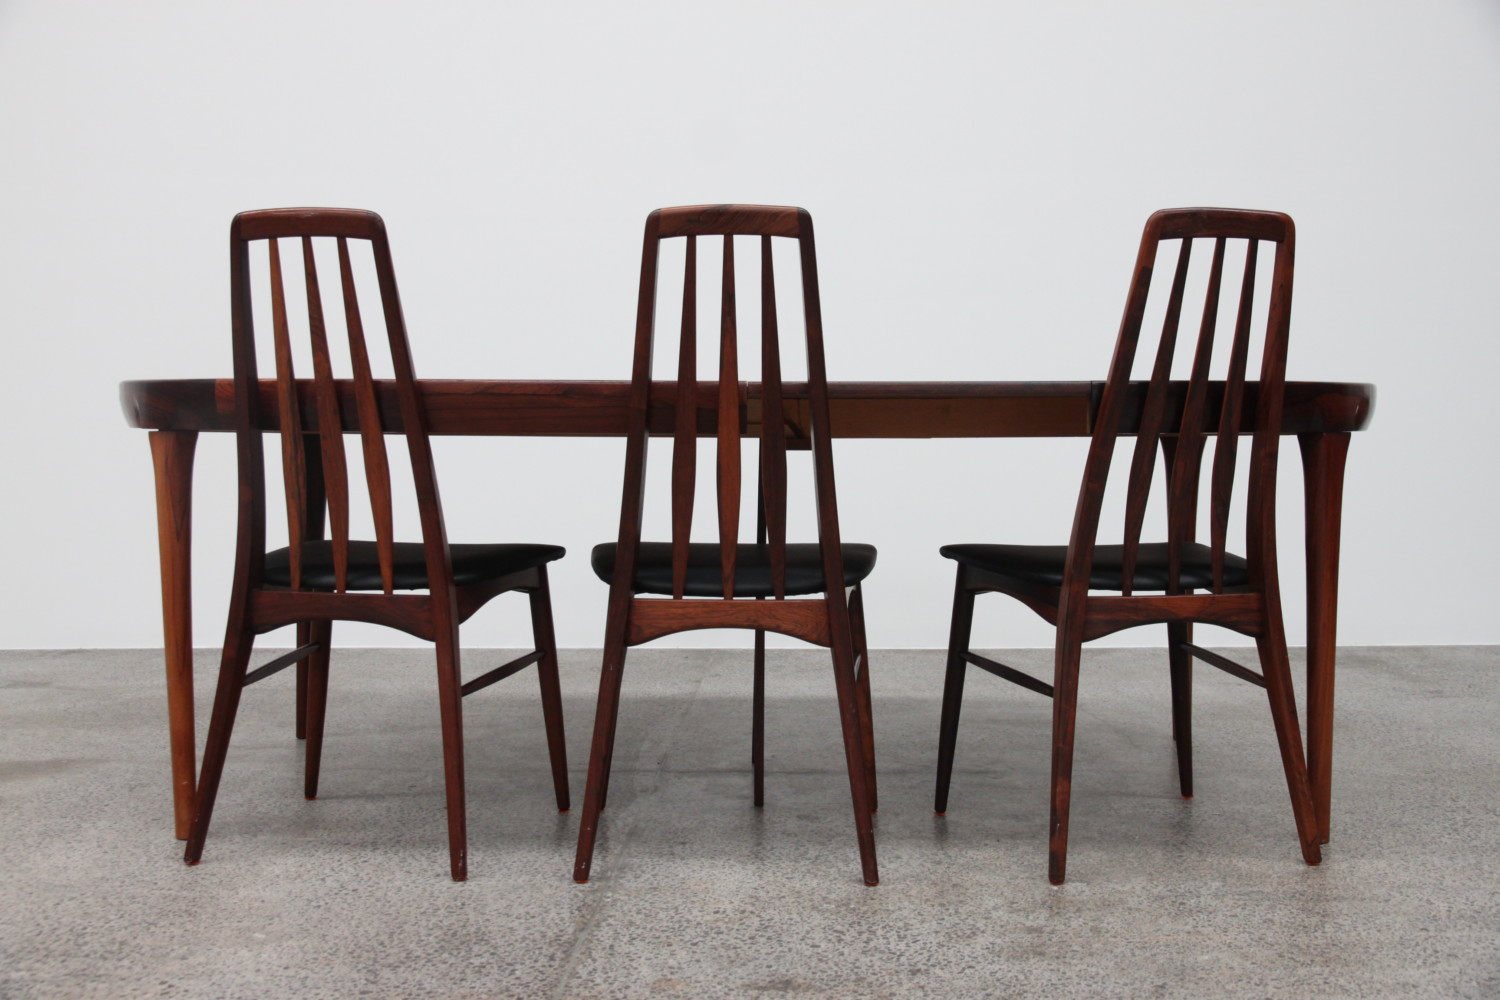 Extendable Rosewood Dining Table By IB Kofod Larsen